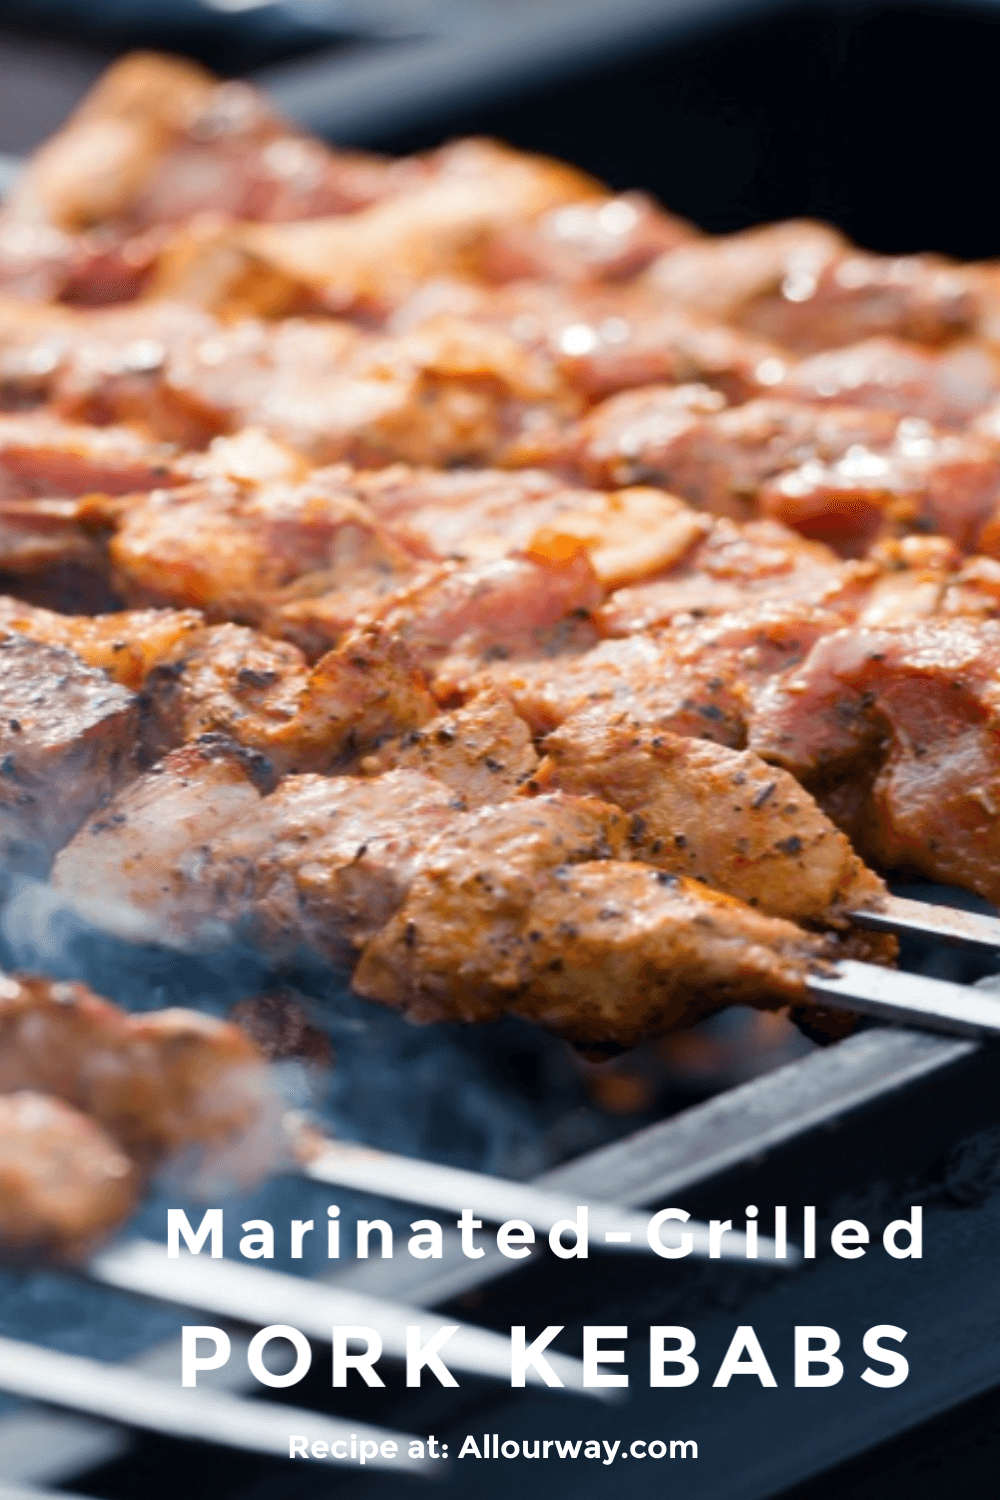 Grilled Pork Kebabs are first marinated in a tasty red wine/lemon/Dijon marinade and then quickly grilled over high heat. The meat is juicy and flavorful in just minutes. A great meat idea for summer evenings or even camping. Easy to prepare ahead of time and then grill when ready.